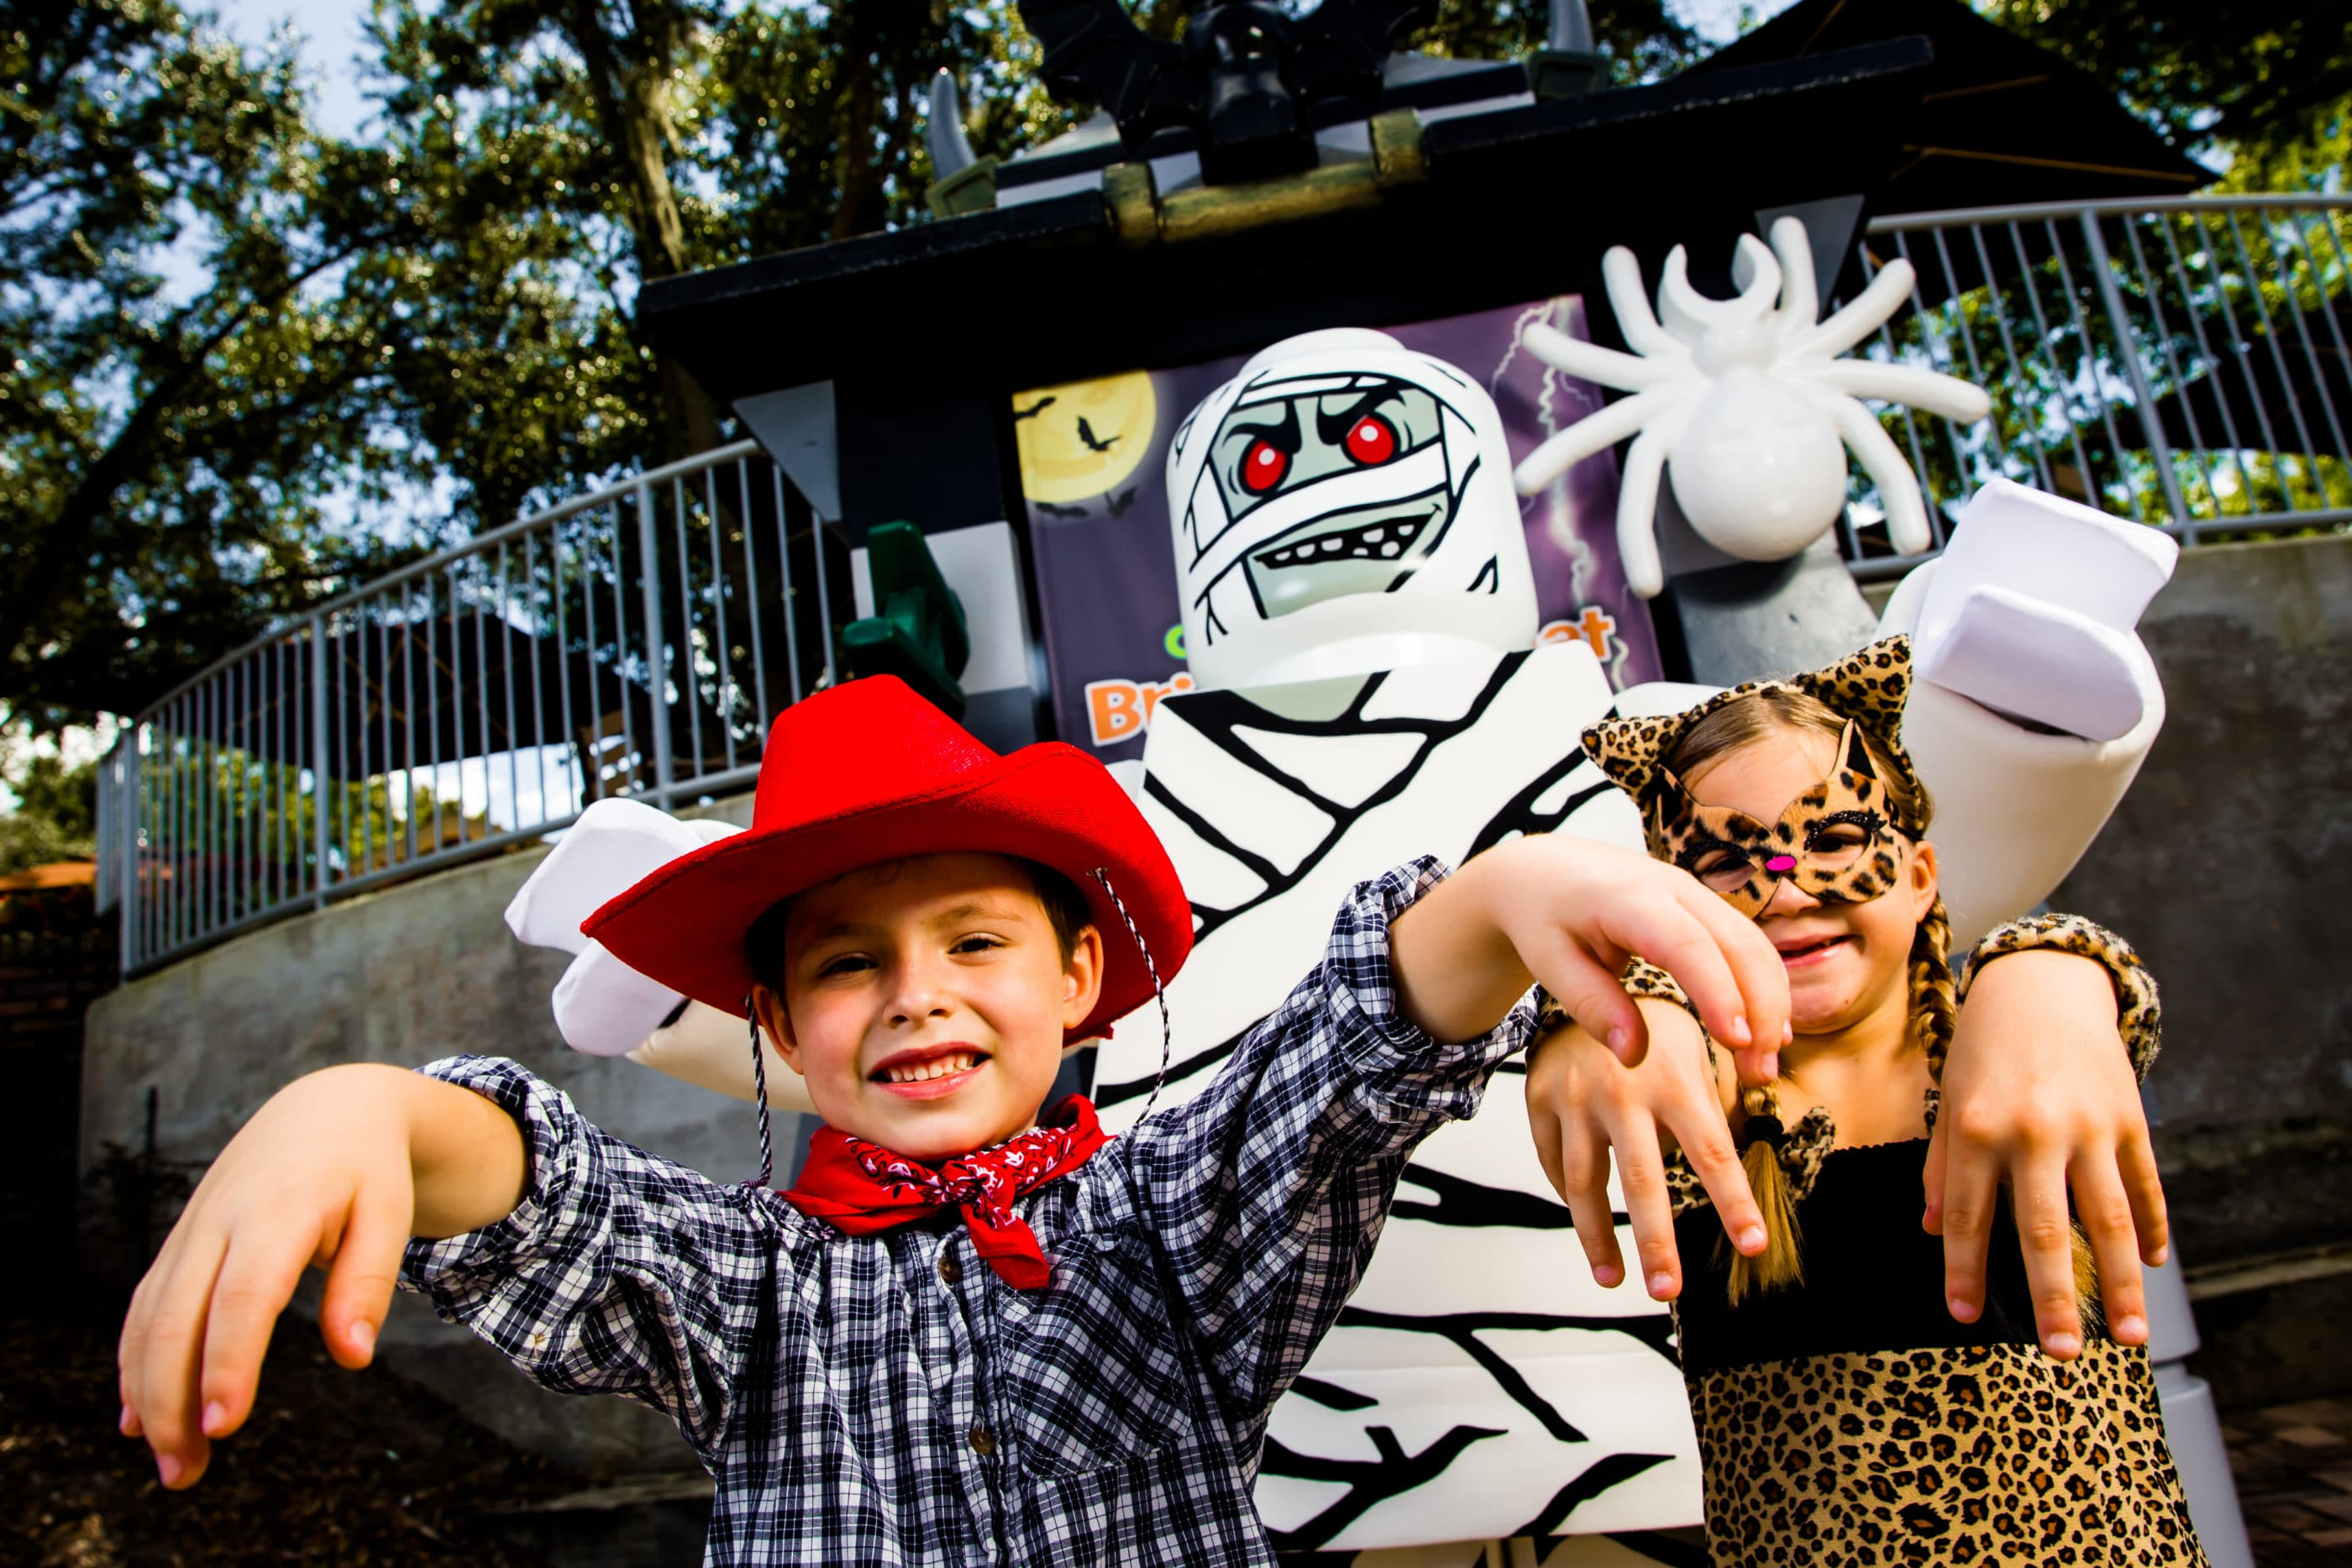 Two children in Halloween costumes pose next to a life-size LEGO mini figure mummy at Brick-or-Treat